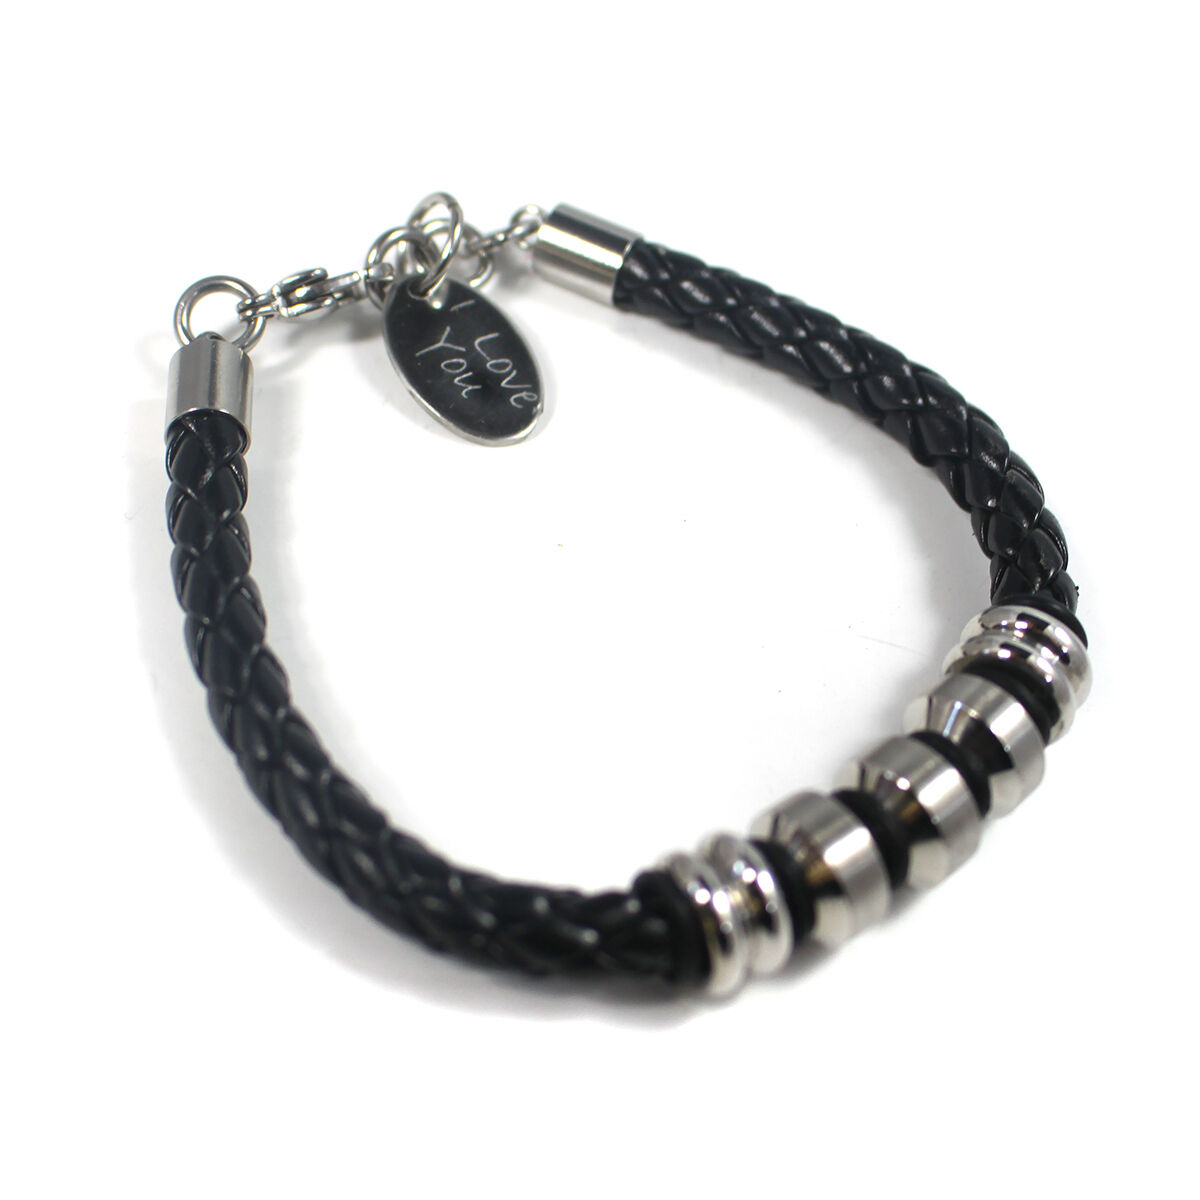 Engraved Charms For Bracelets: MENS LEATHER STEEL BRACELET WITH ENGRAVED CHARM